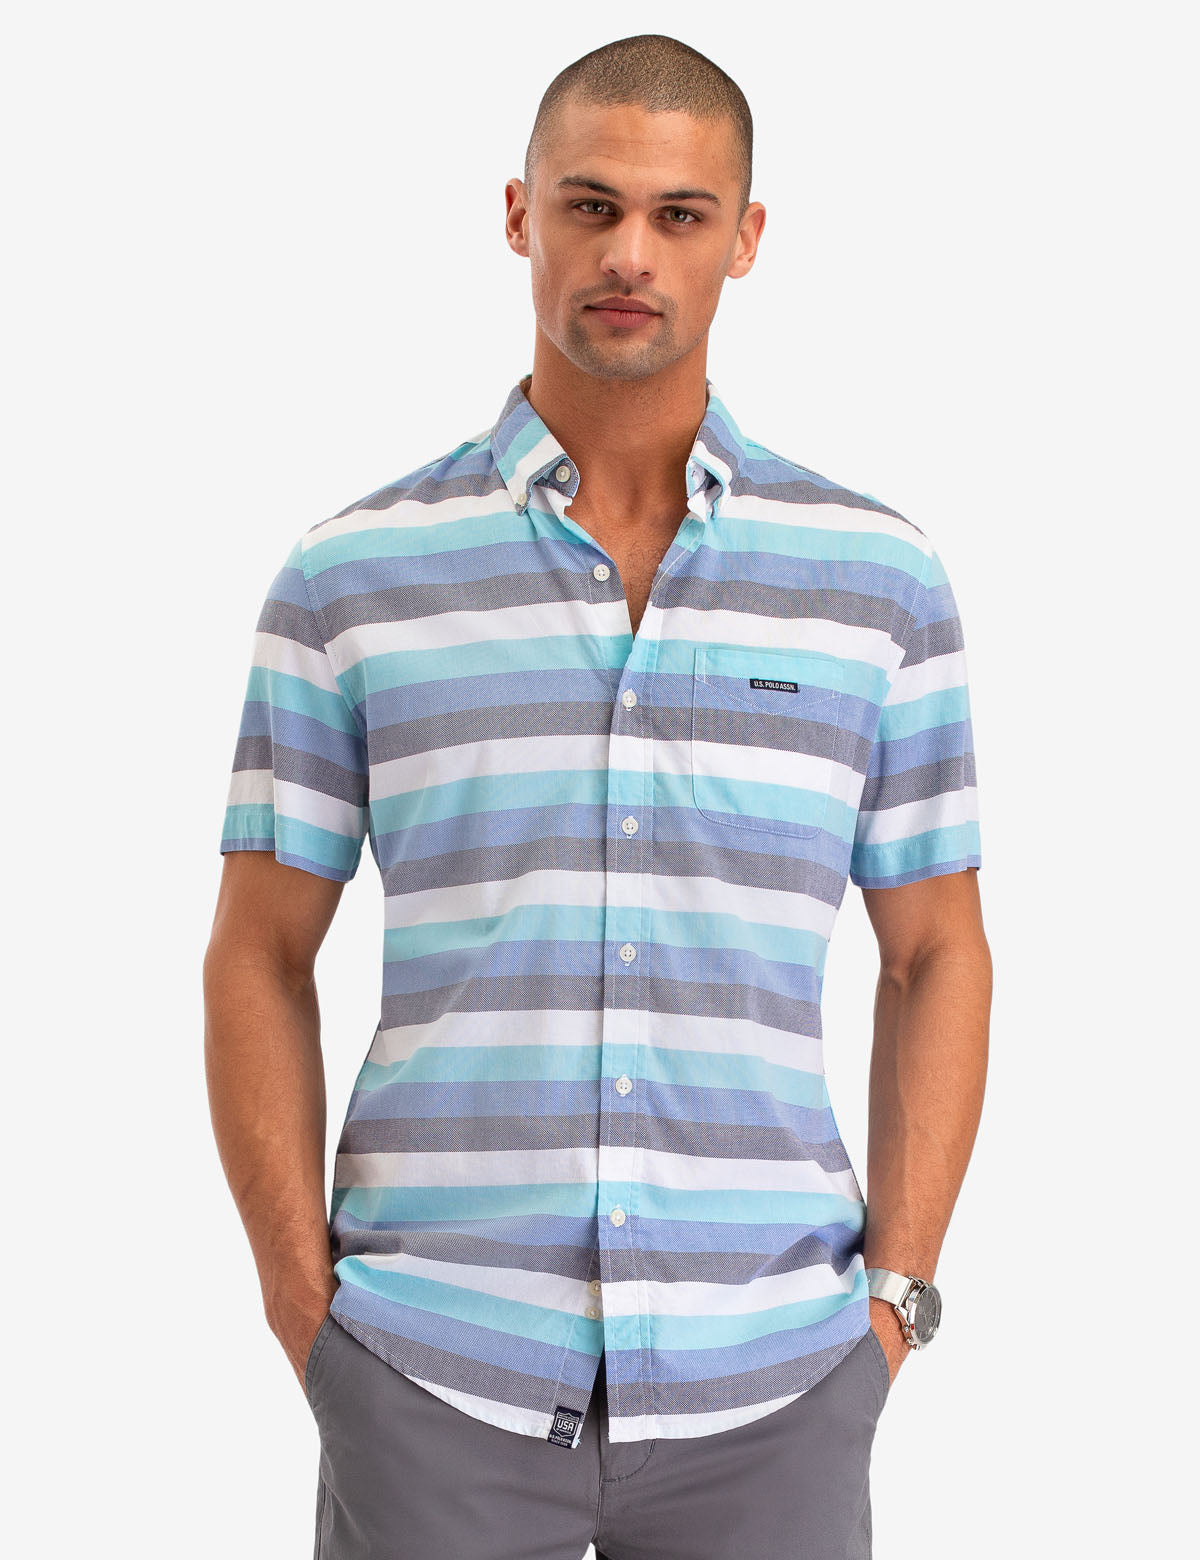 SHORT SLEEVE OXFORD SHIRT - U.S. Polo Assn.